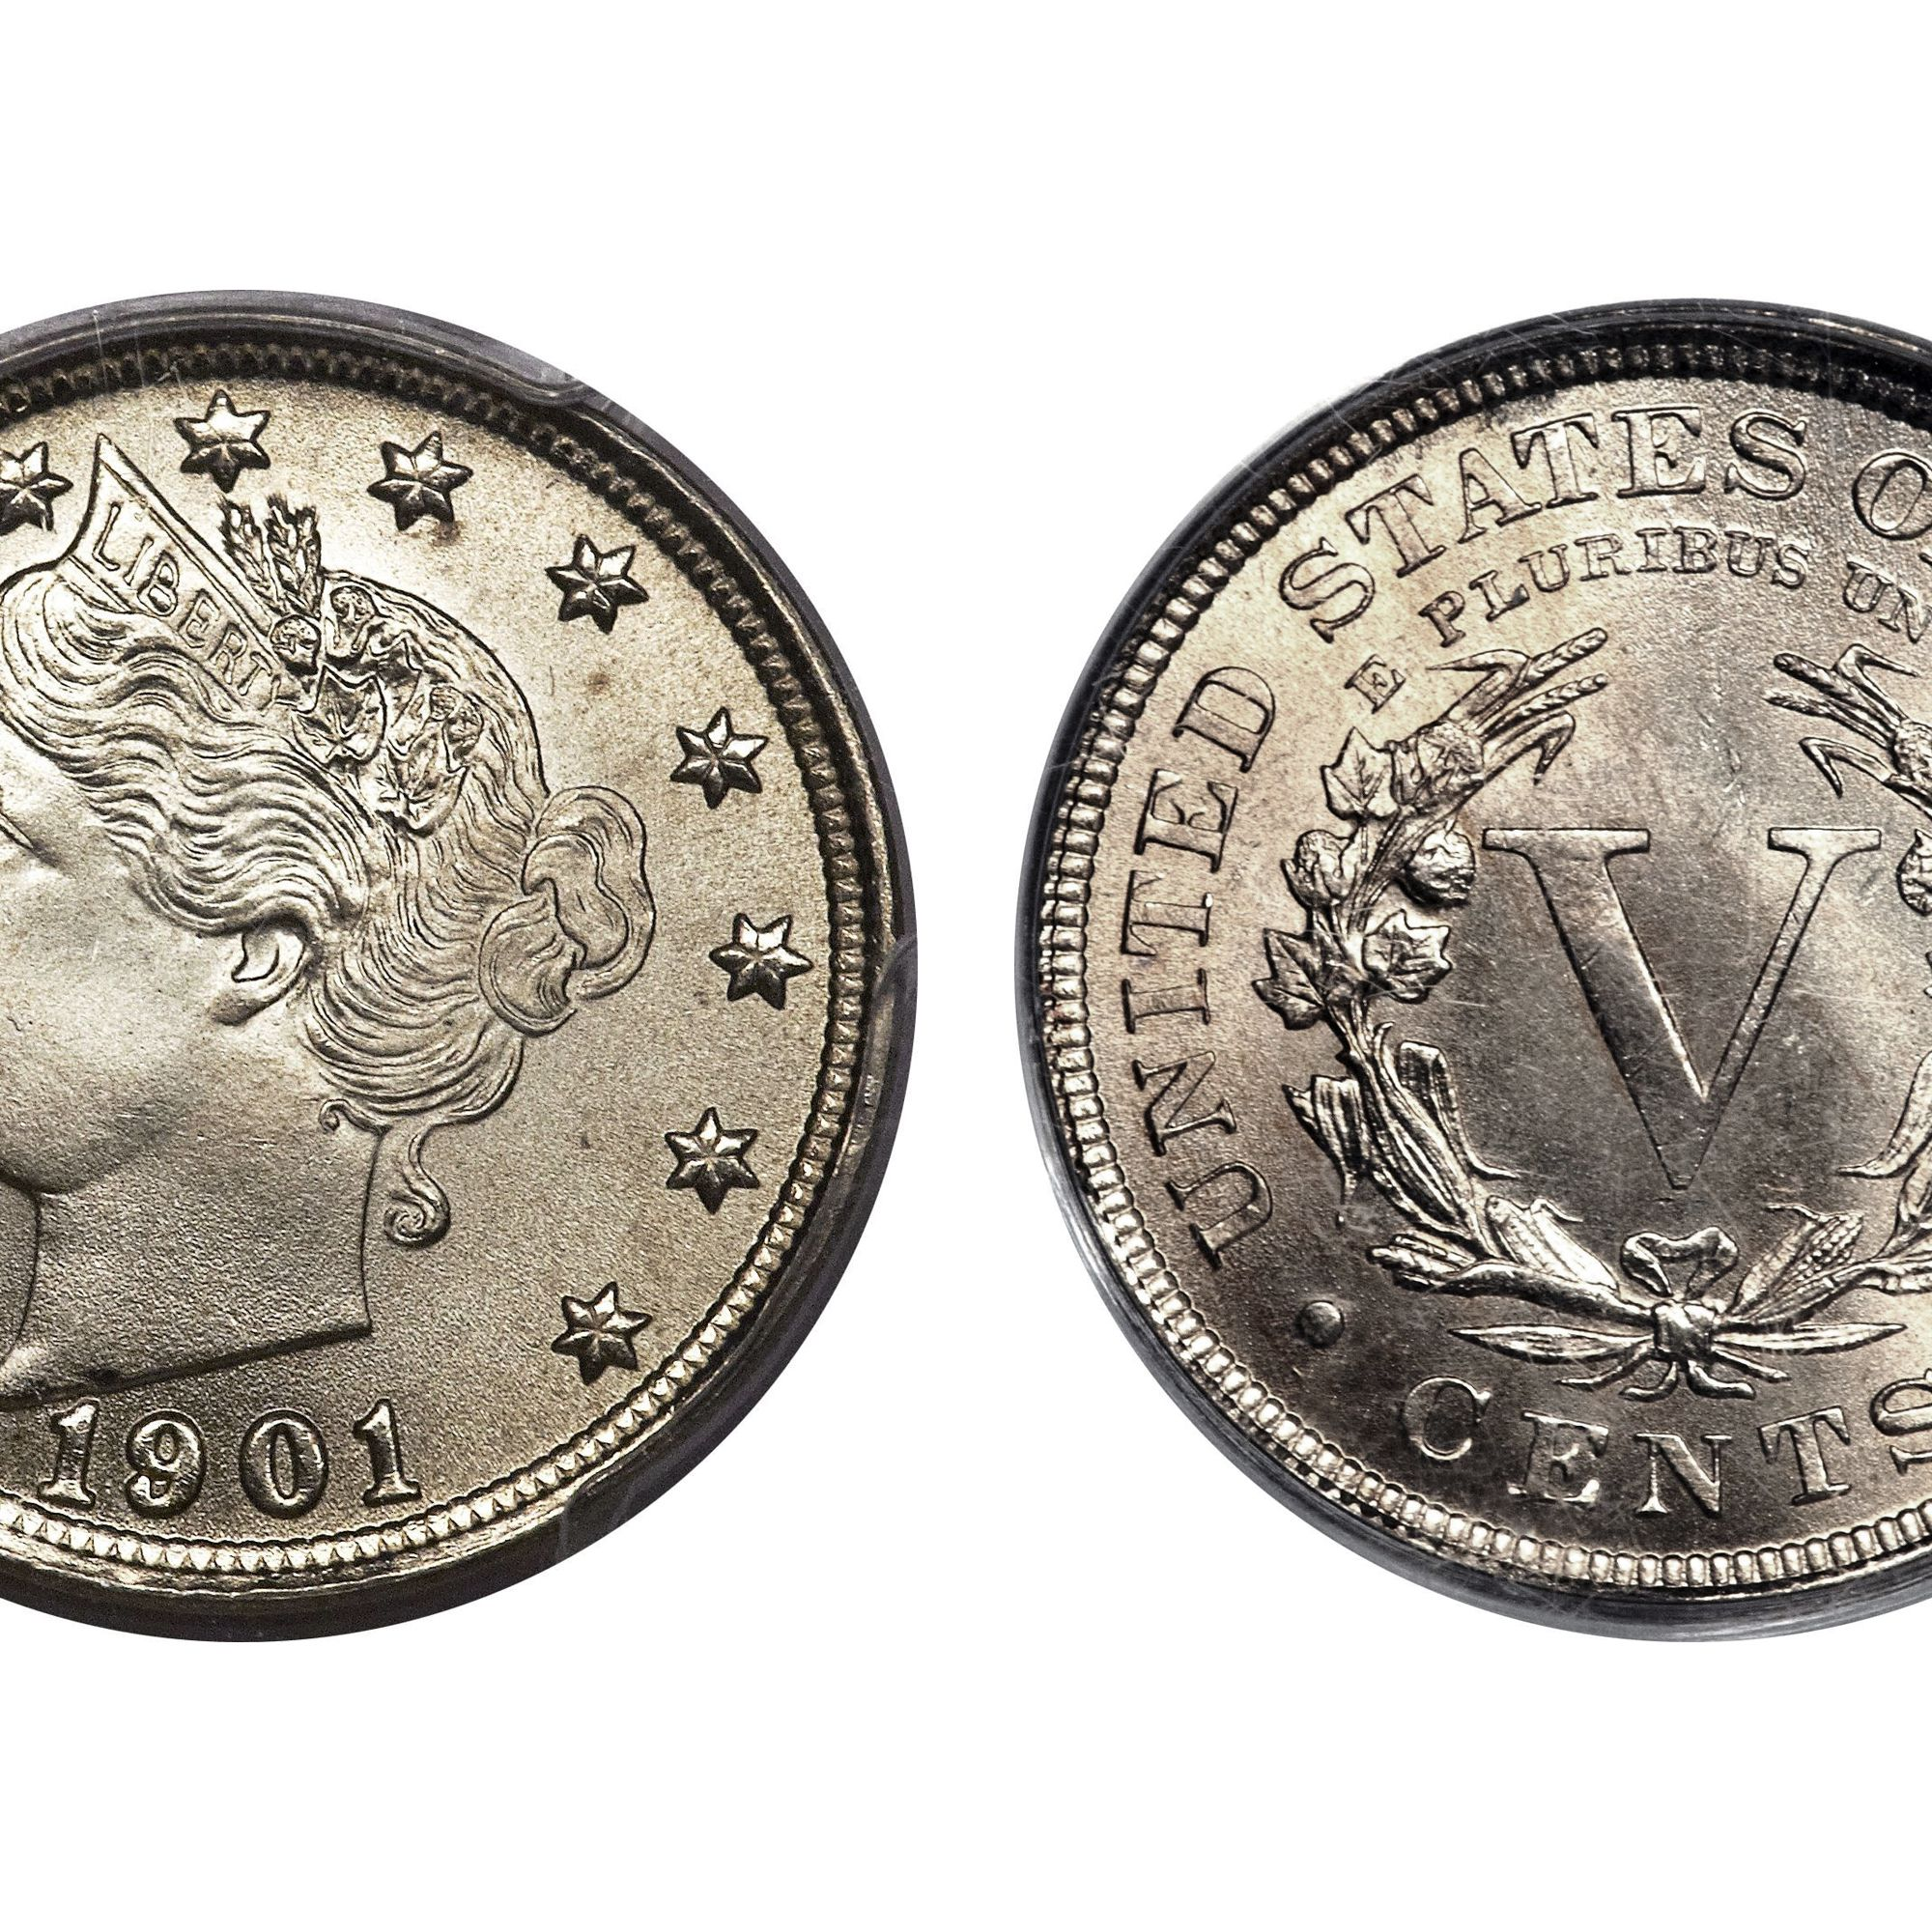 Liberty Head V Nickel Values And Prices